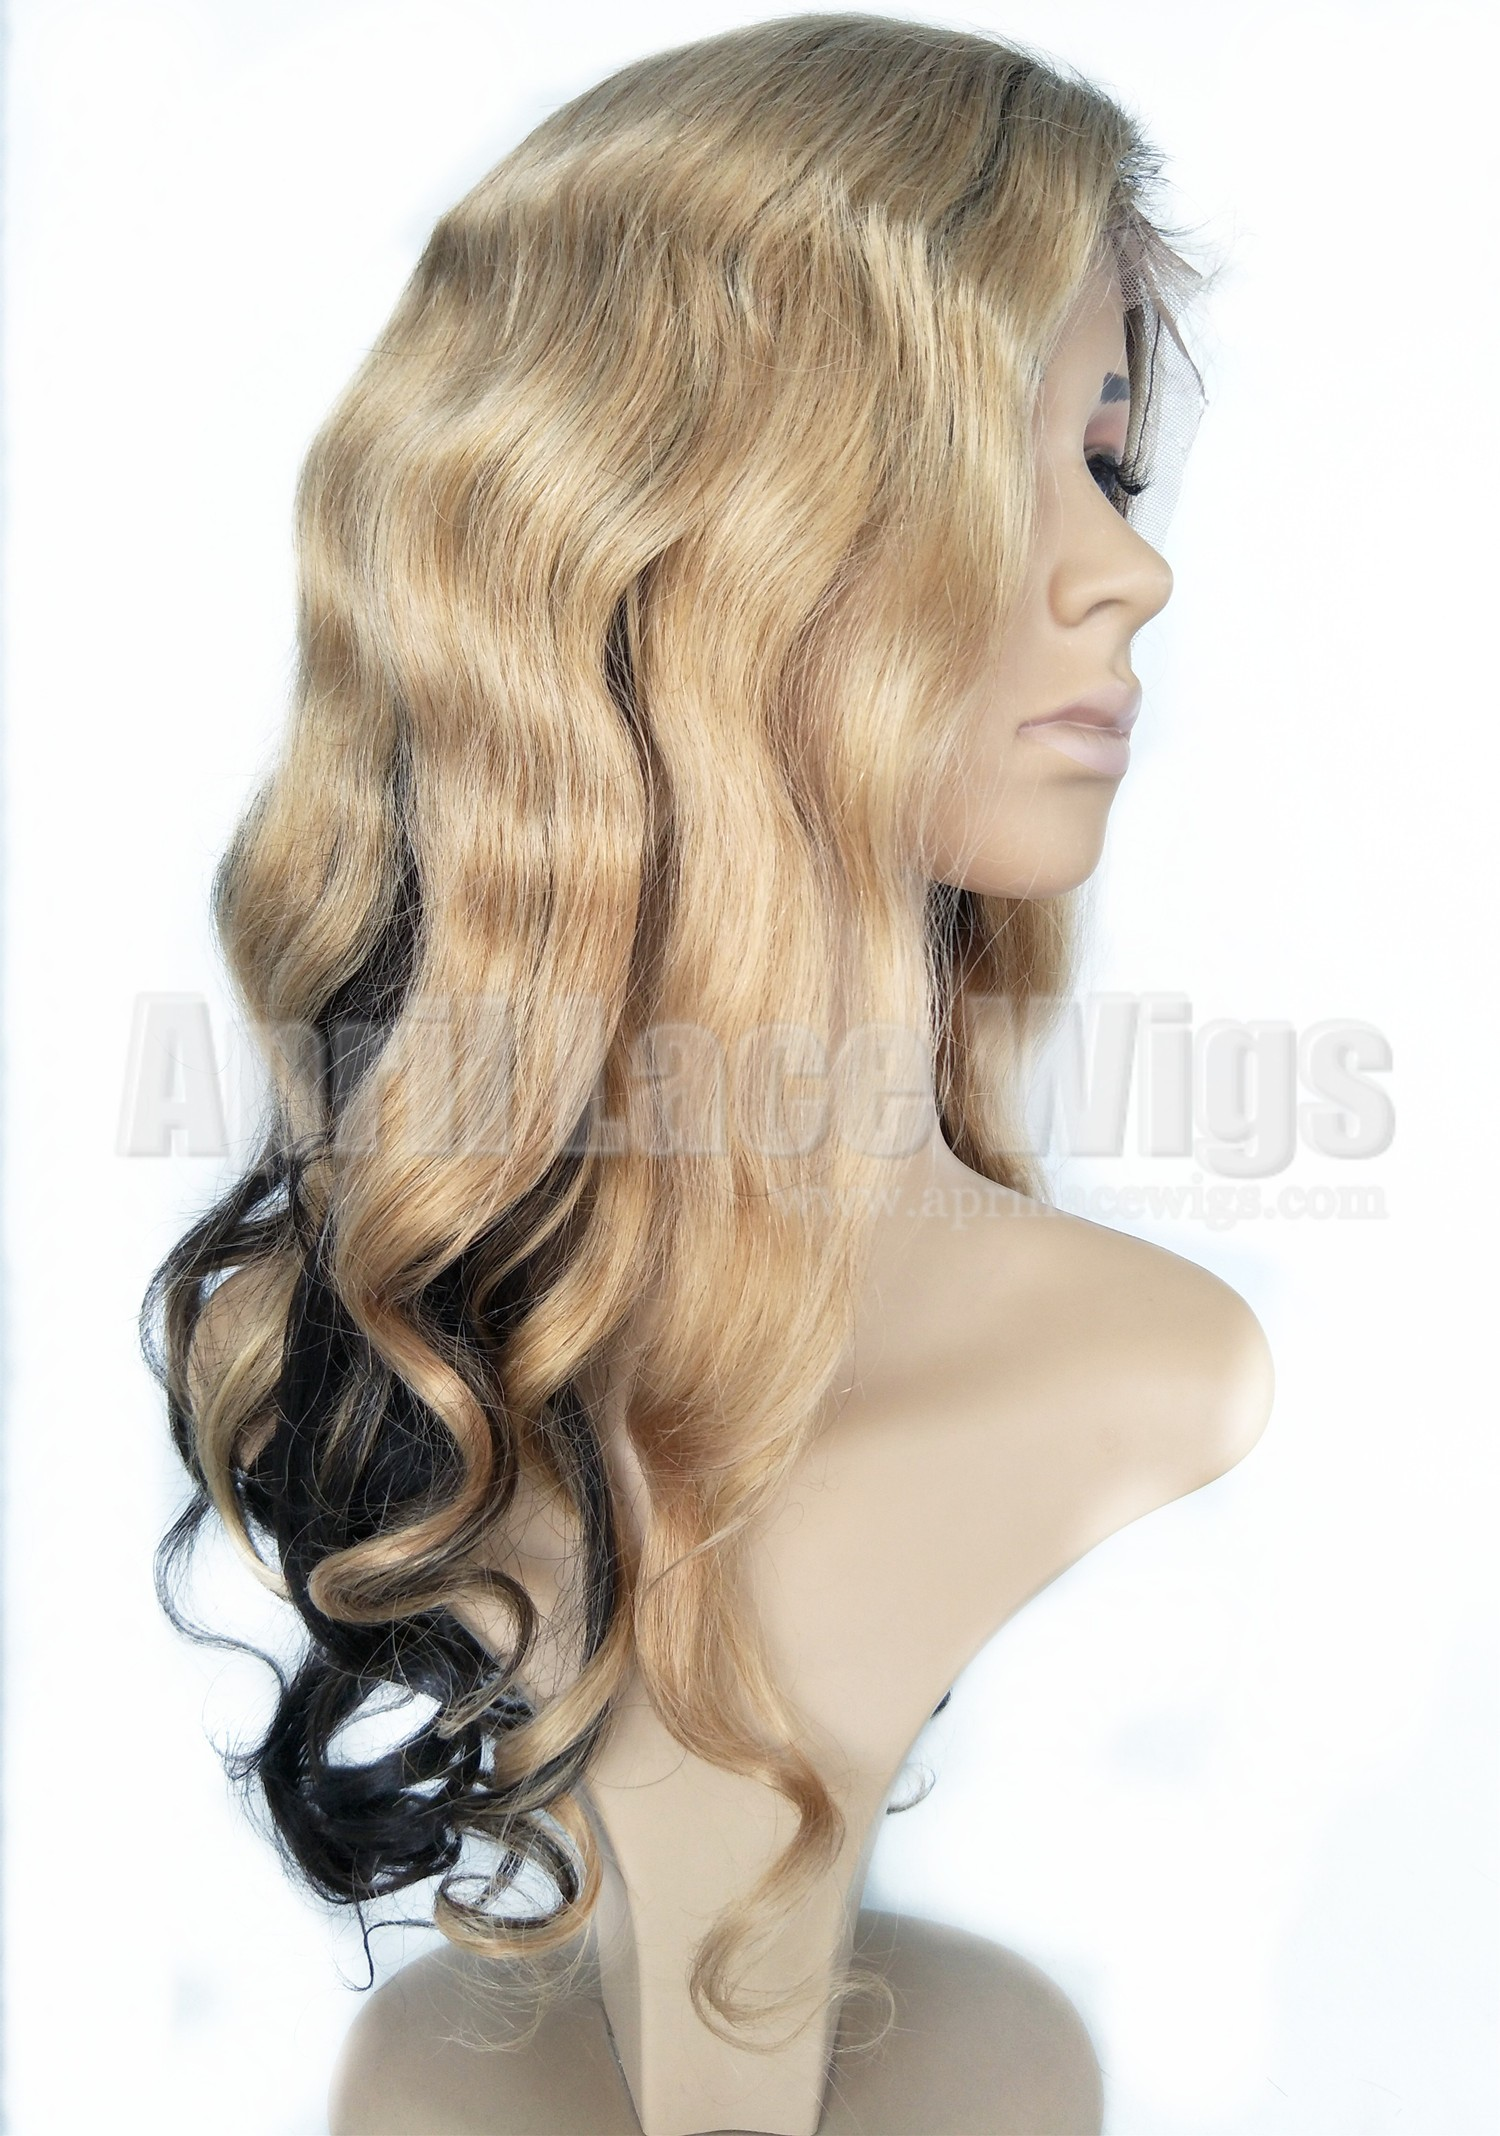 Virgin hair two tone beyonce wave hair glueless full lace wig with 2x4 silk top wig on sale